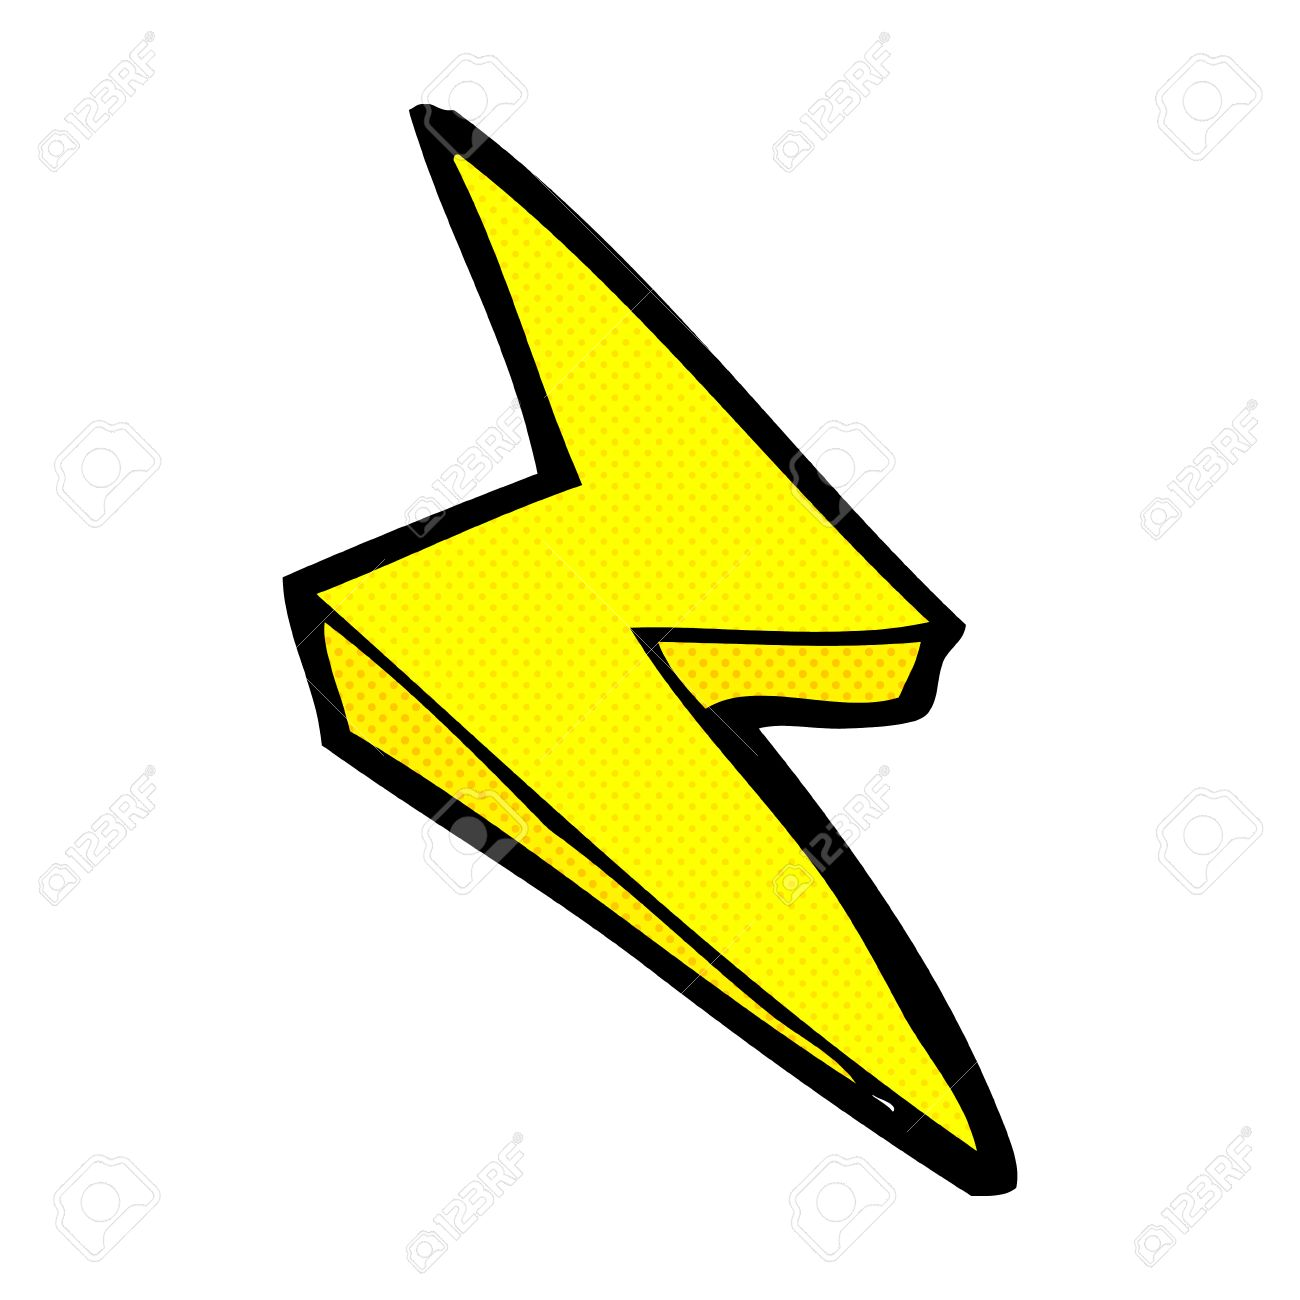 retro comic book style cartoon lightning bolt symbol royalty free rh 123rf com yellow lightning bolt clipart lightning bolt clip art free